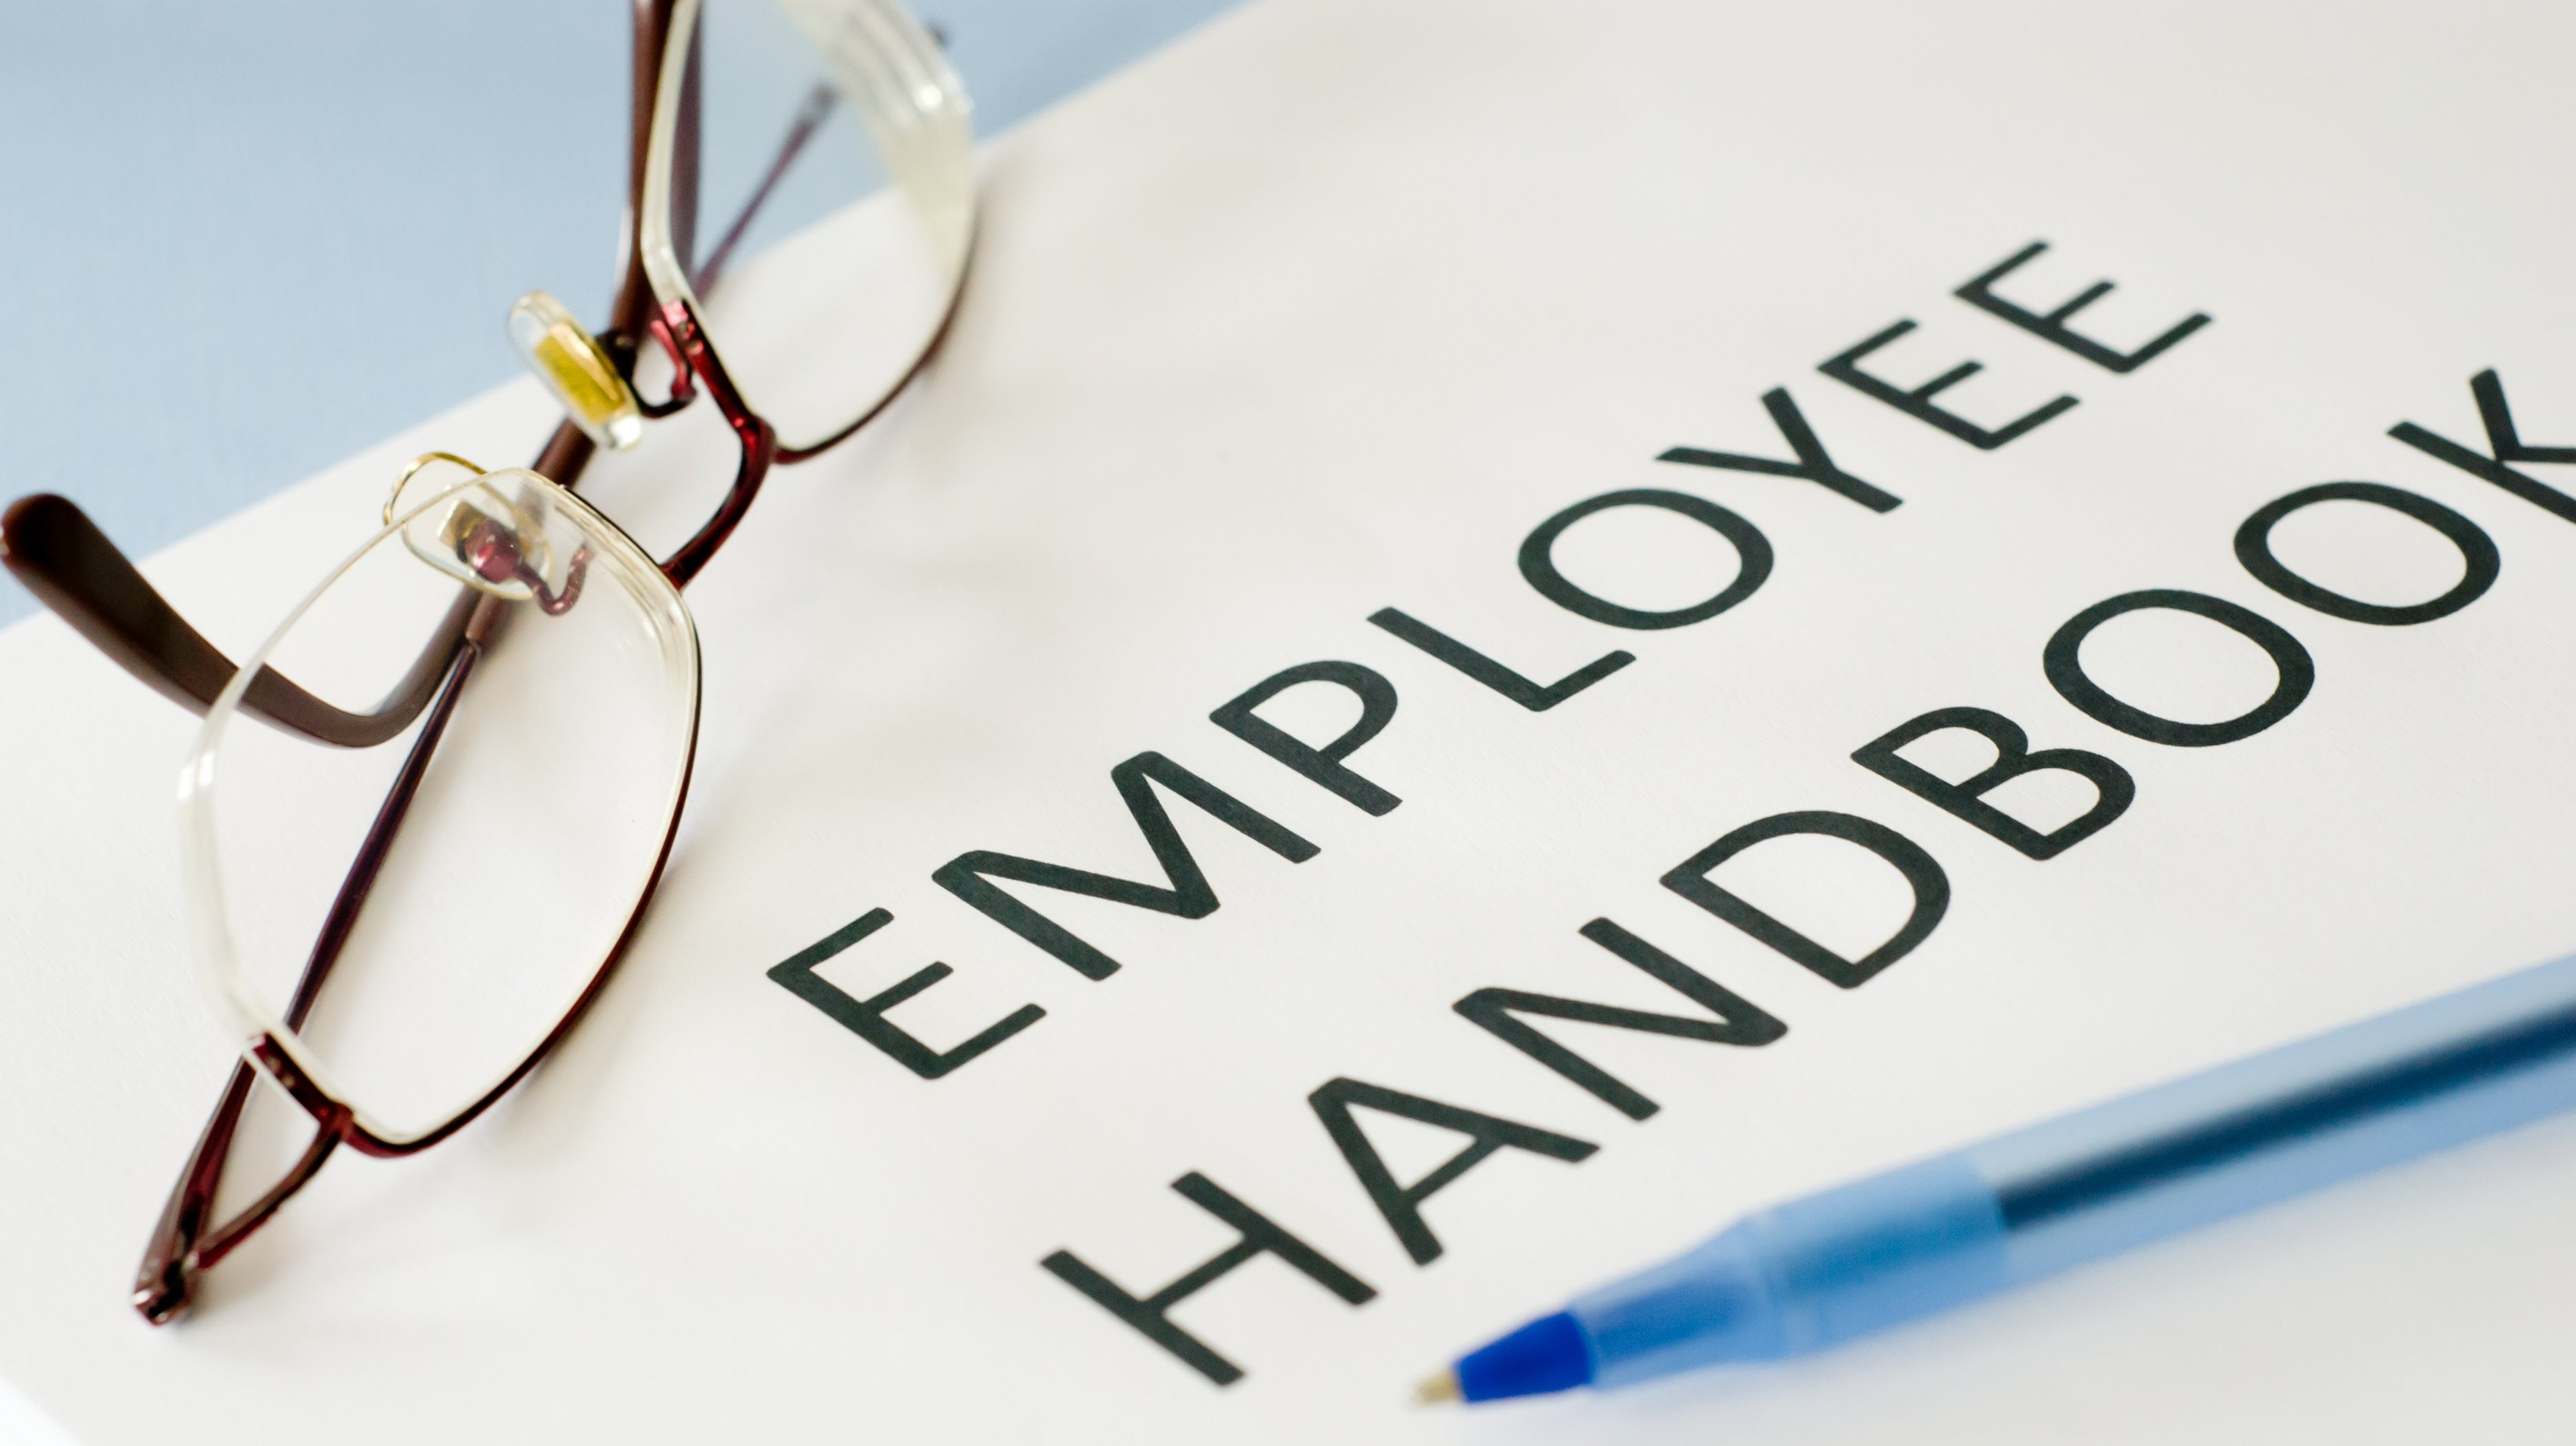 5 Reasons Why Having an Employee Handbook Is Important